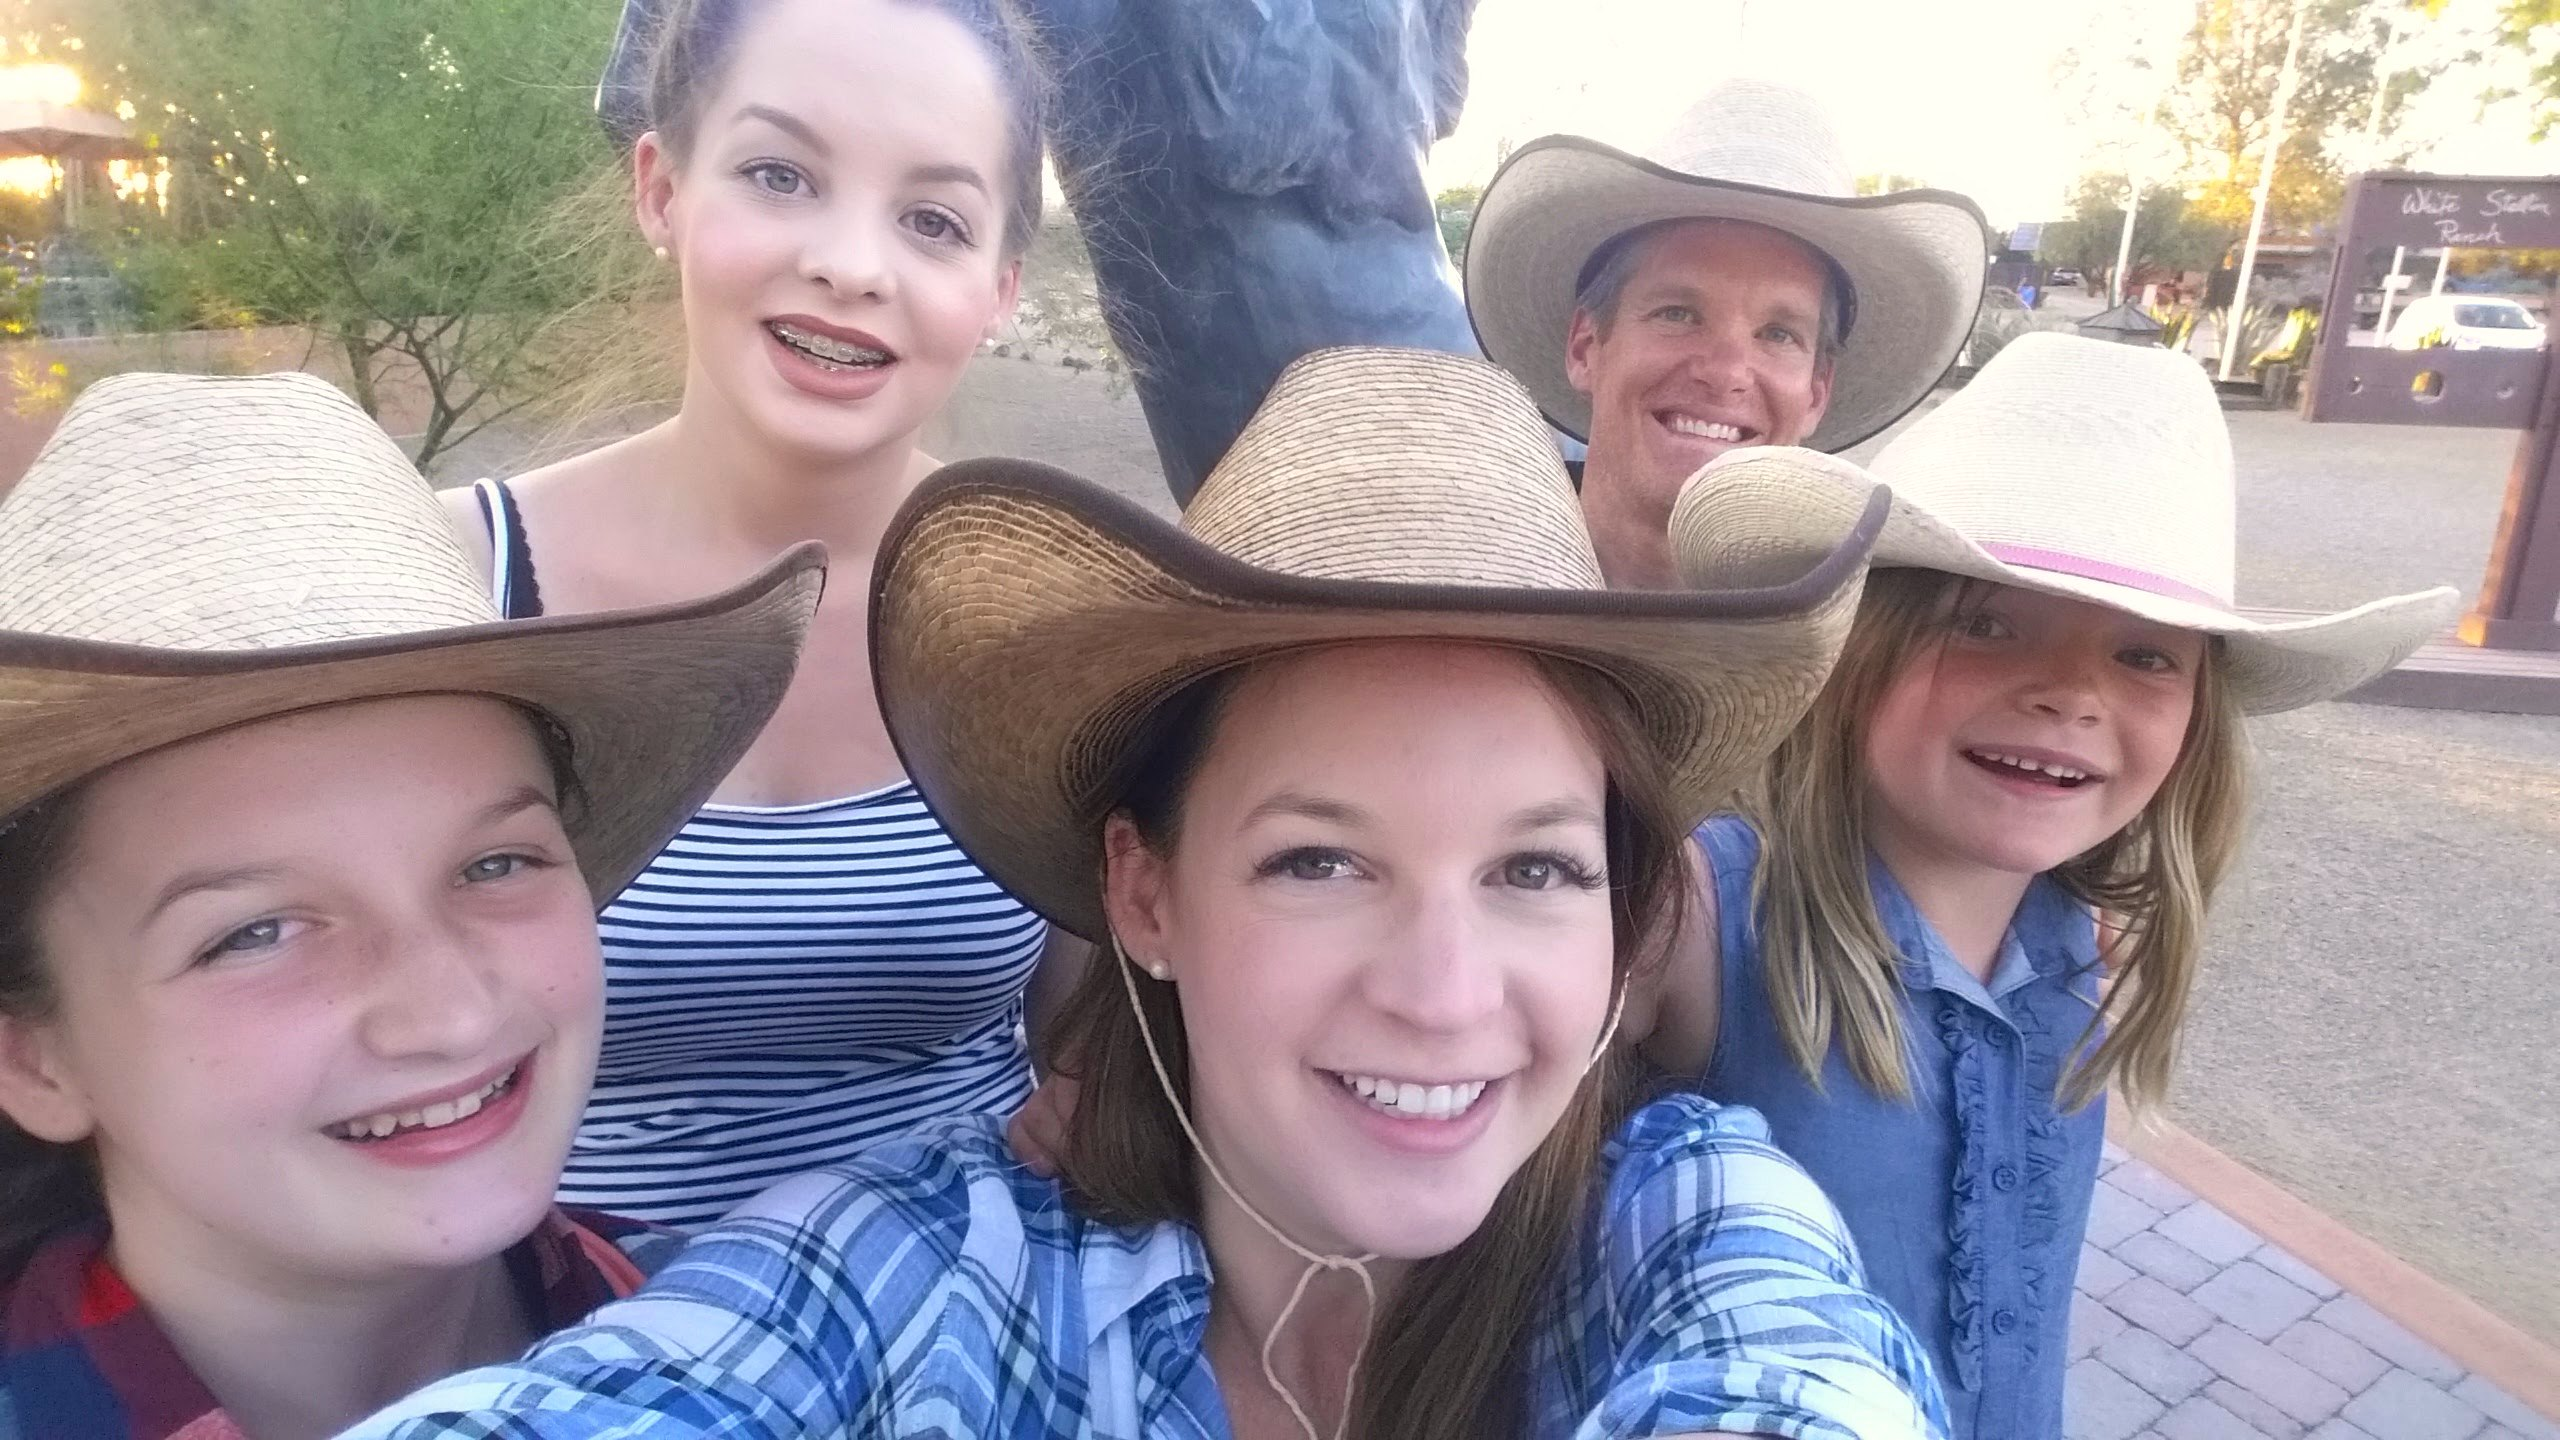 dude ranch selfie